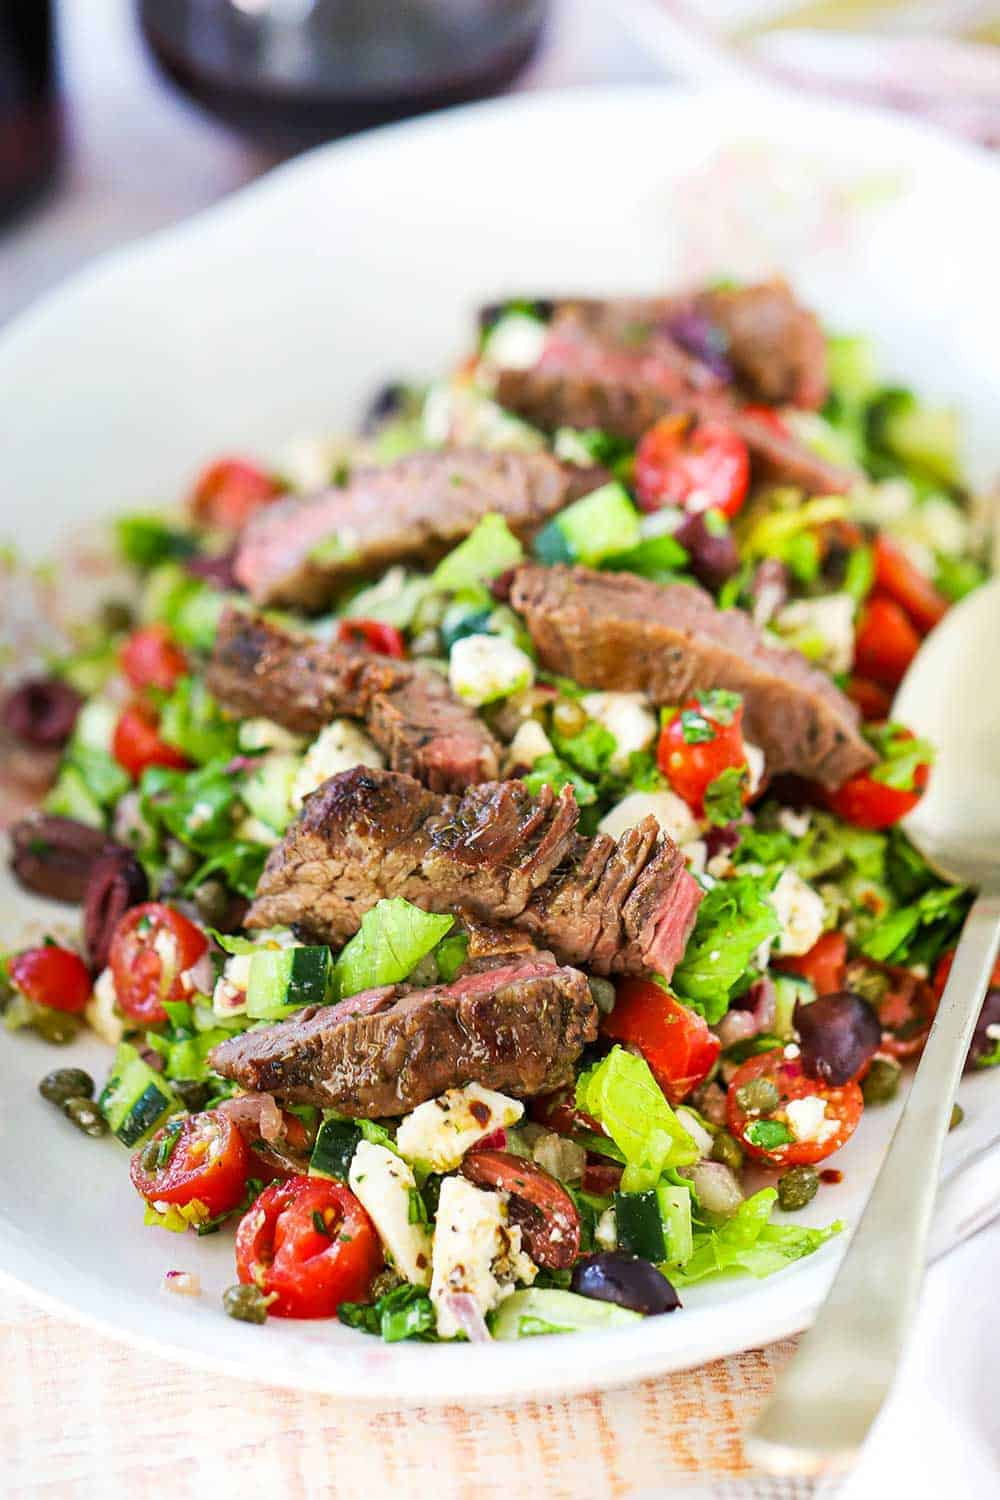 Greek Salad with Grilled Steak